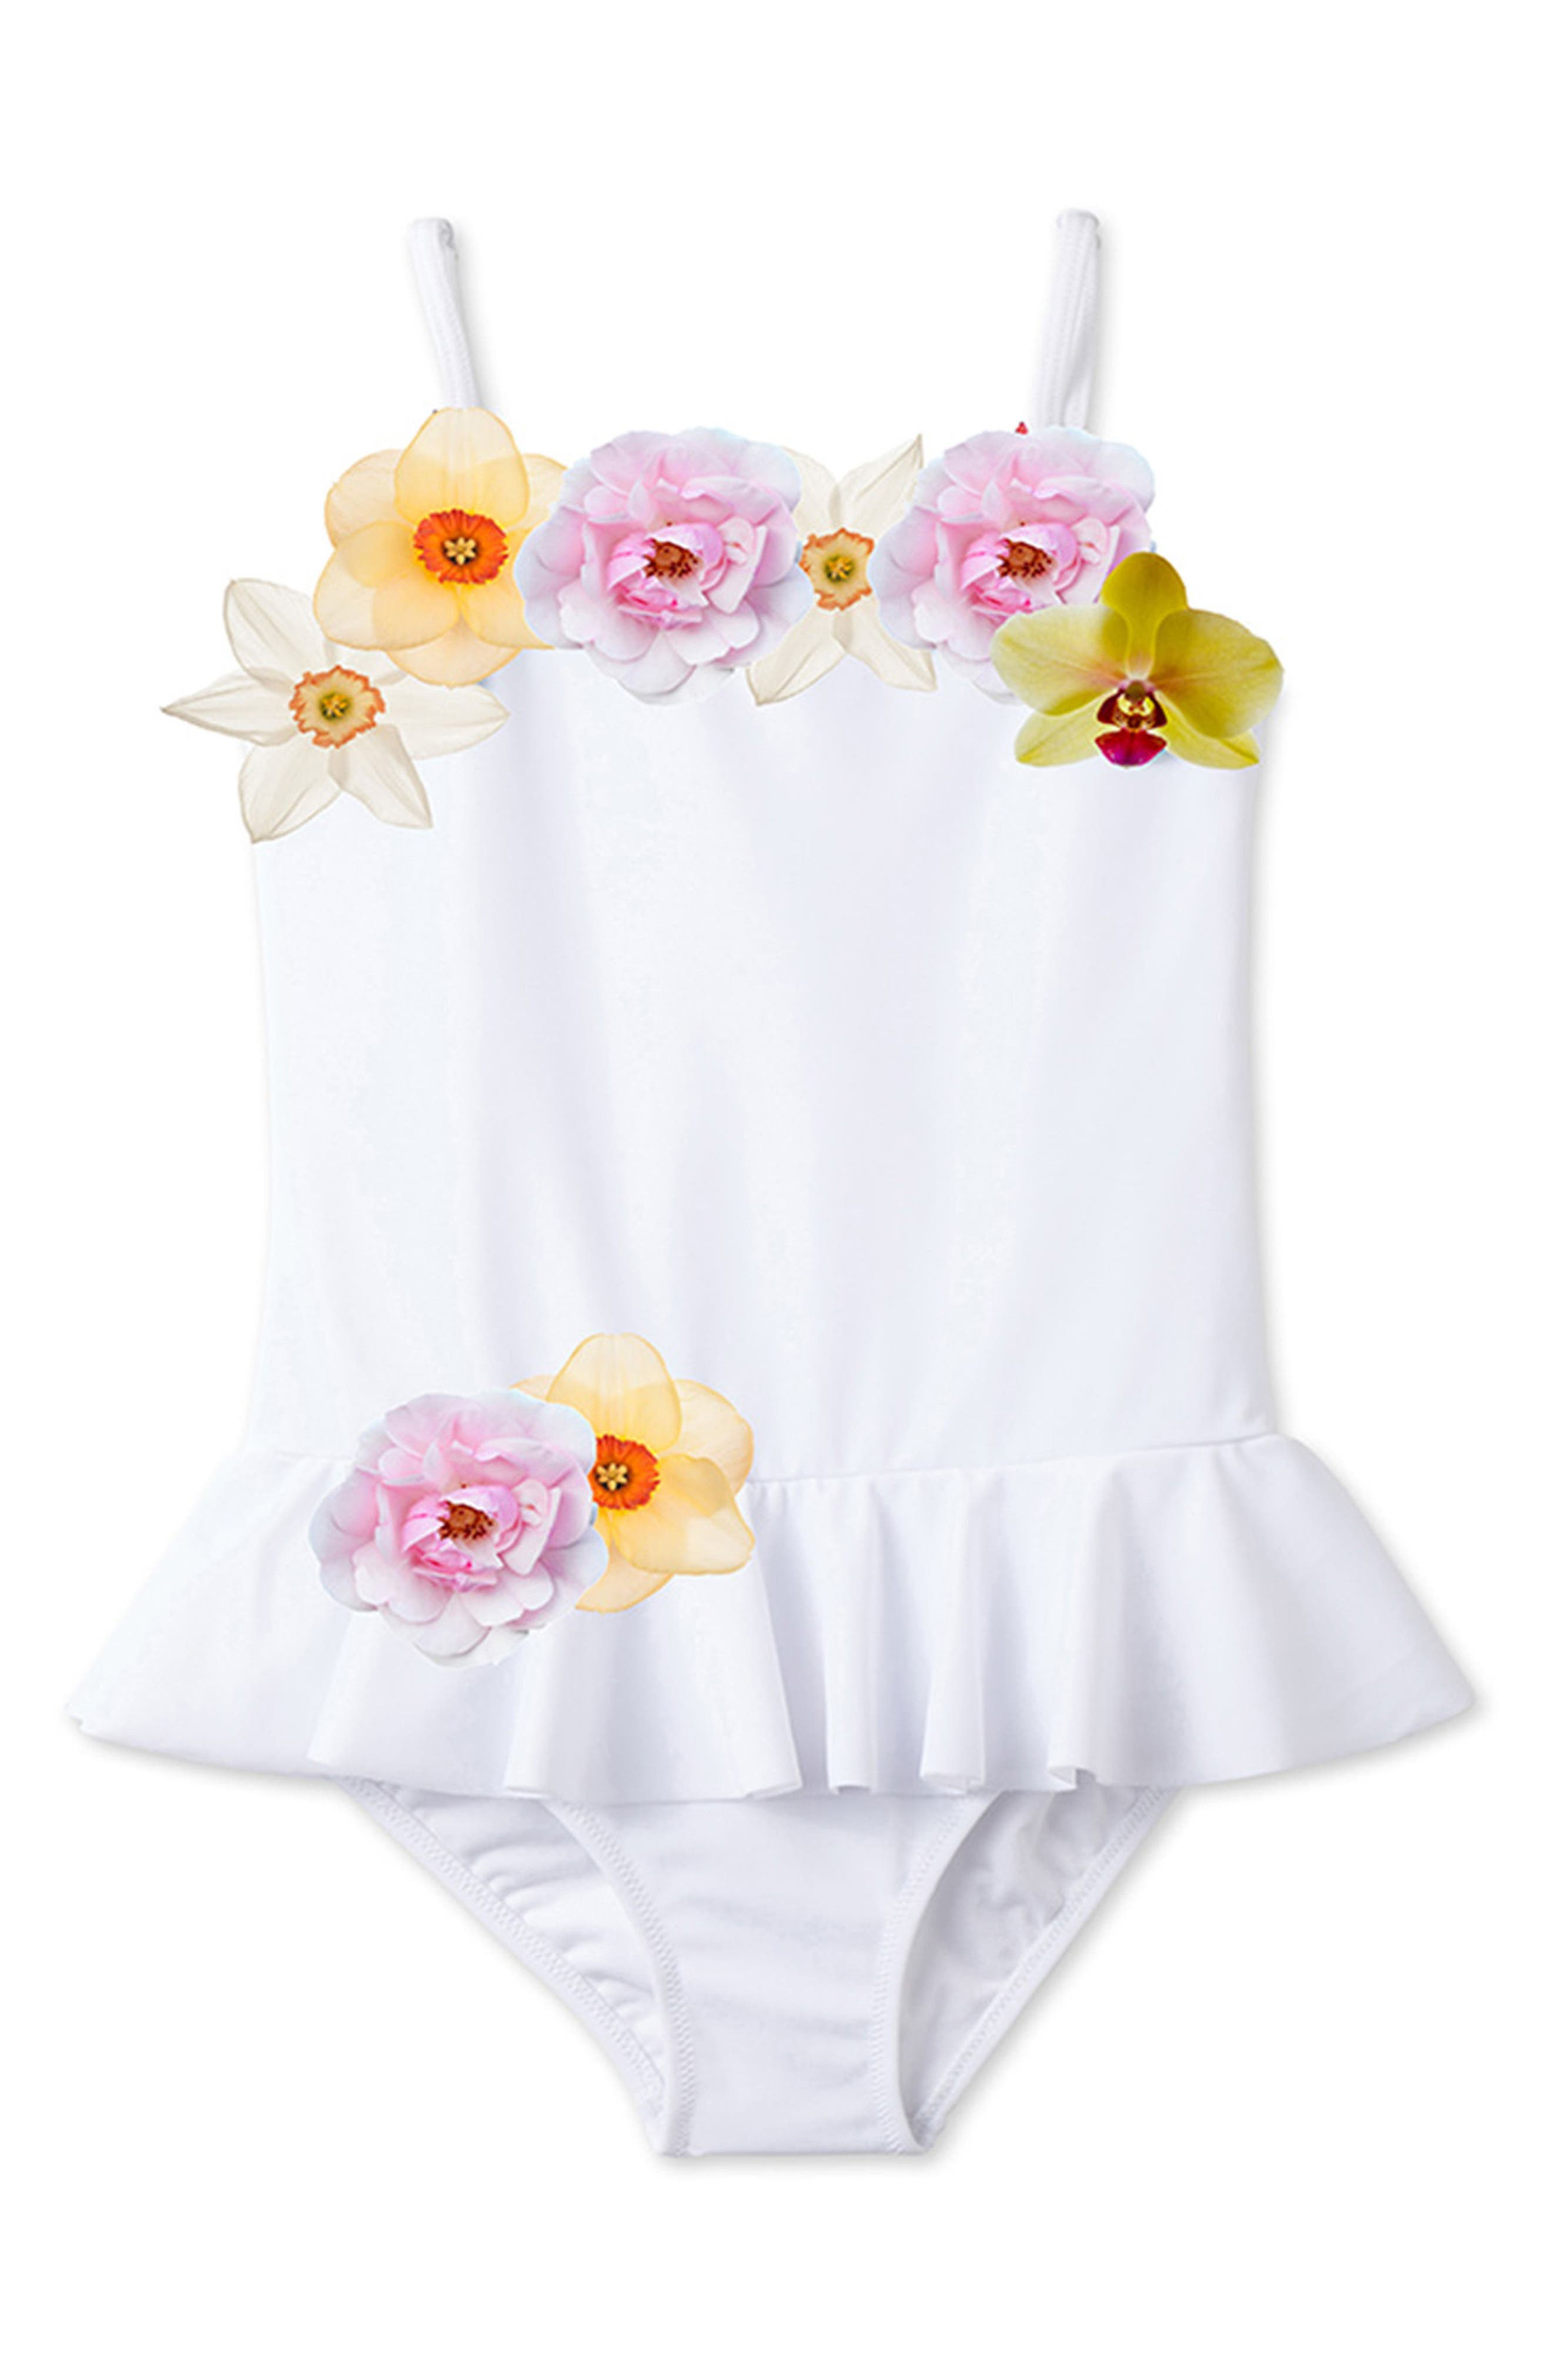 Alternate Image 1 Selected - Stella Cove 3D Floral One-Piece Swimsuit (Toddler Girls, Little Girls & Big Girls)